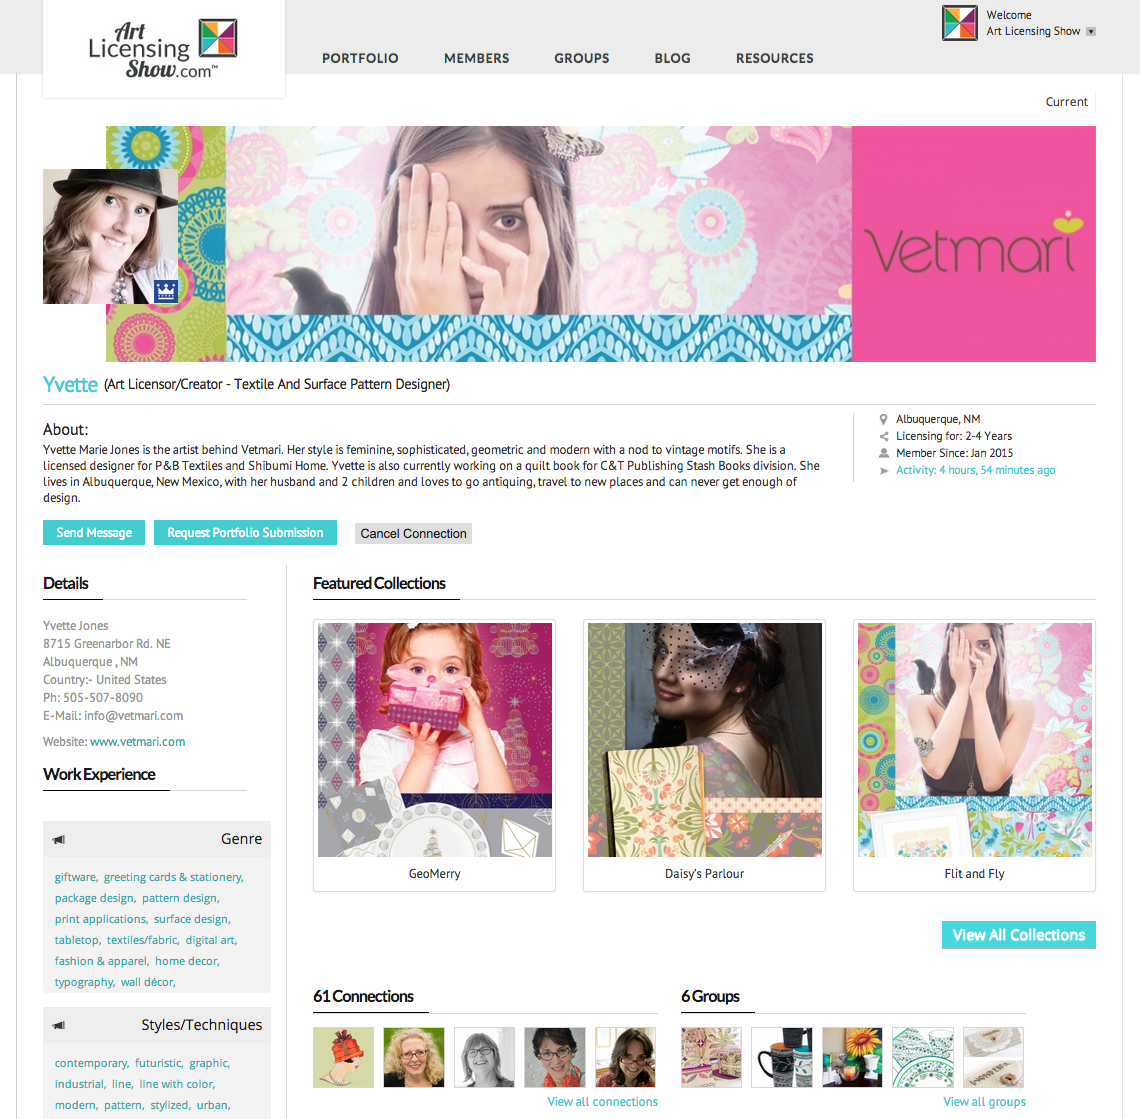 Yvette Marie Jones / Vetmari Art Licensing Show Profile Page